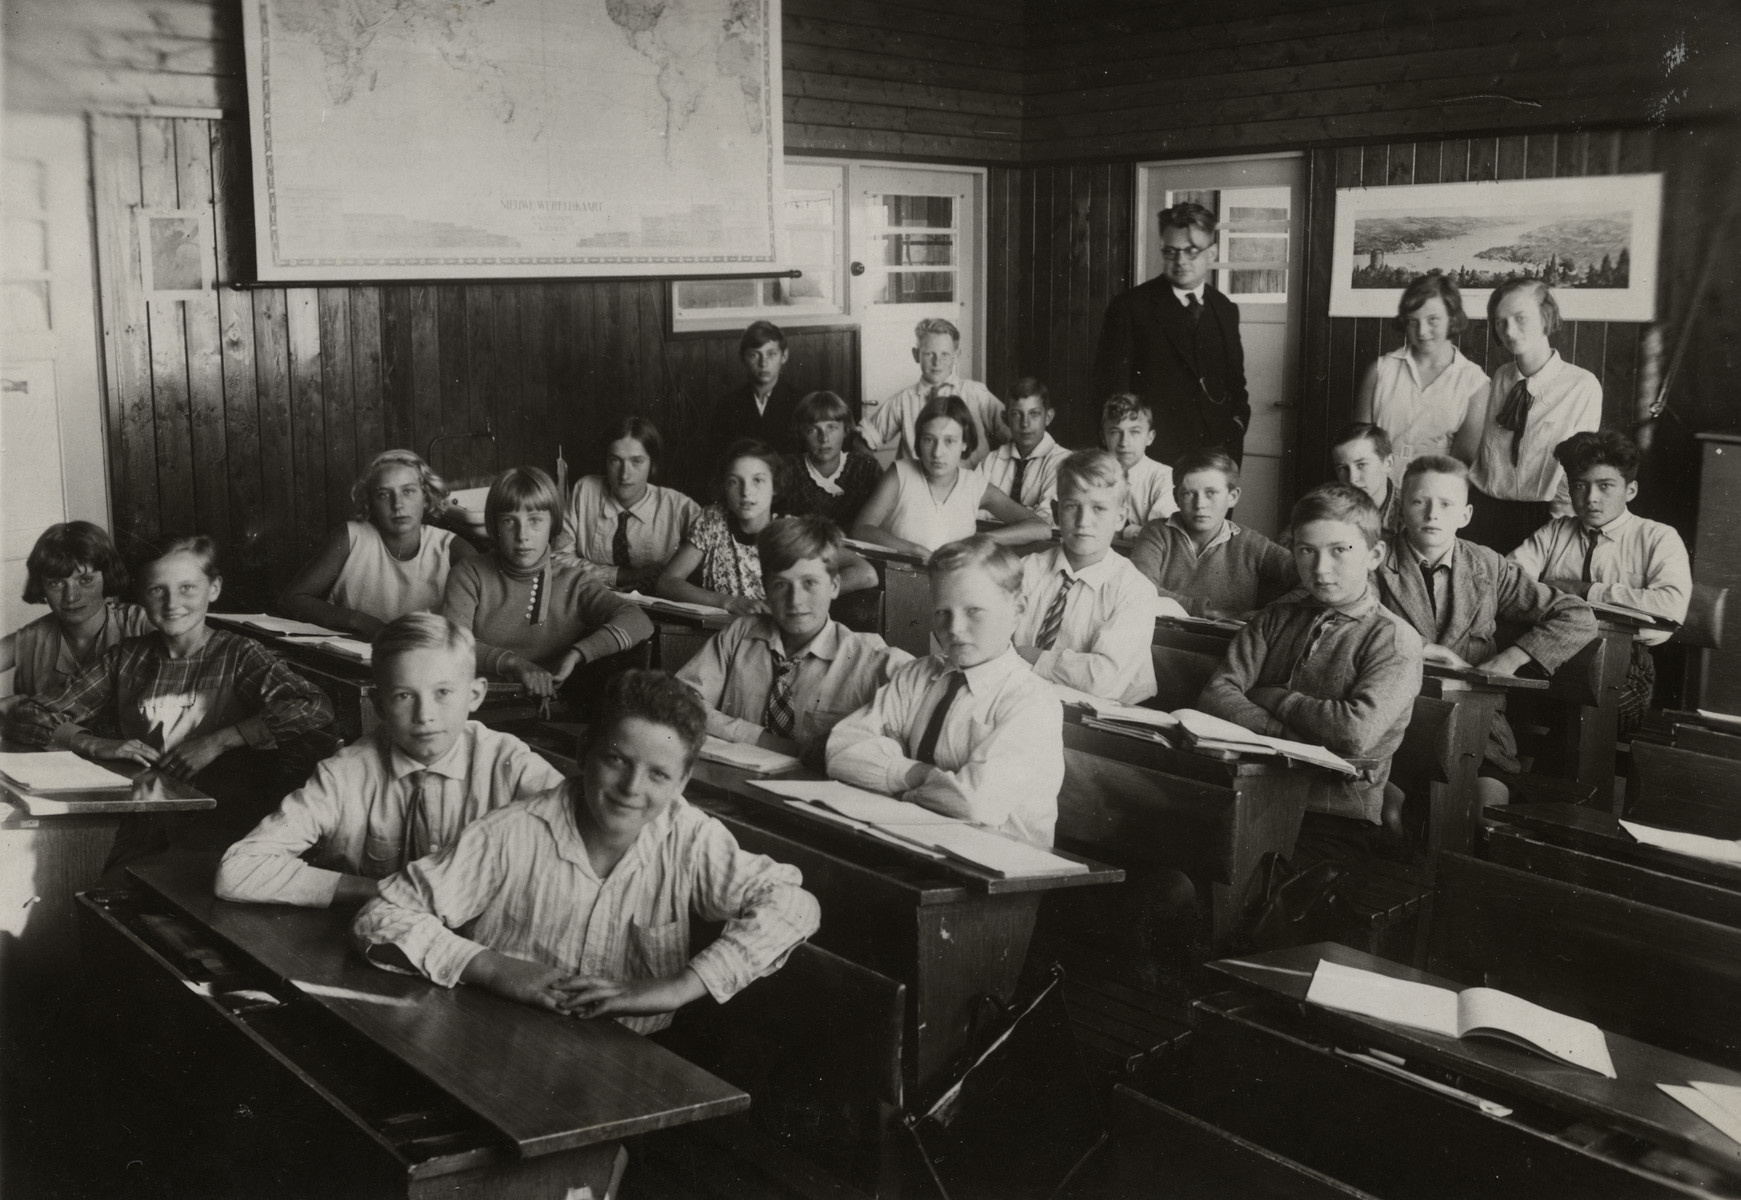 Students pose at their desks in a classroom of a Dutch high school.  Among those pictured is Samuel (Samu) Kok, first row, right.